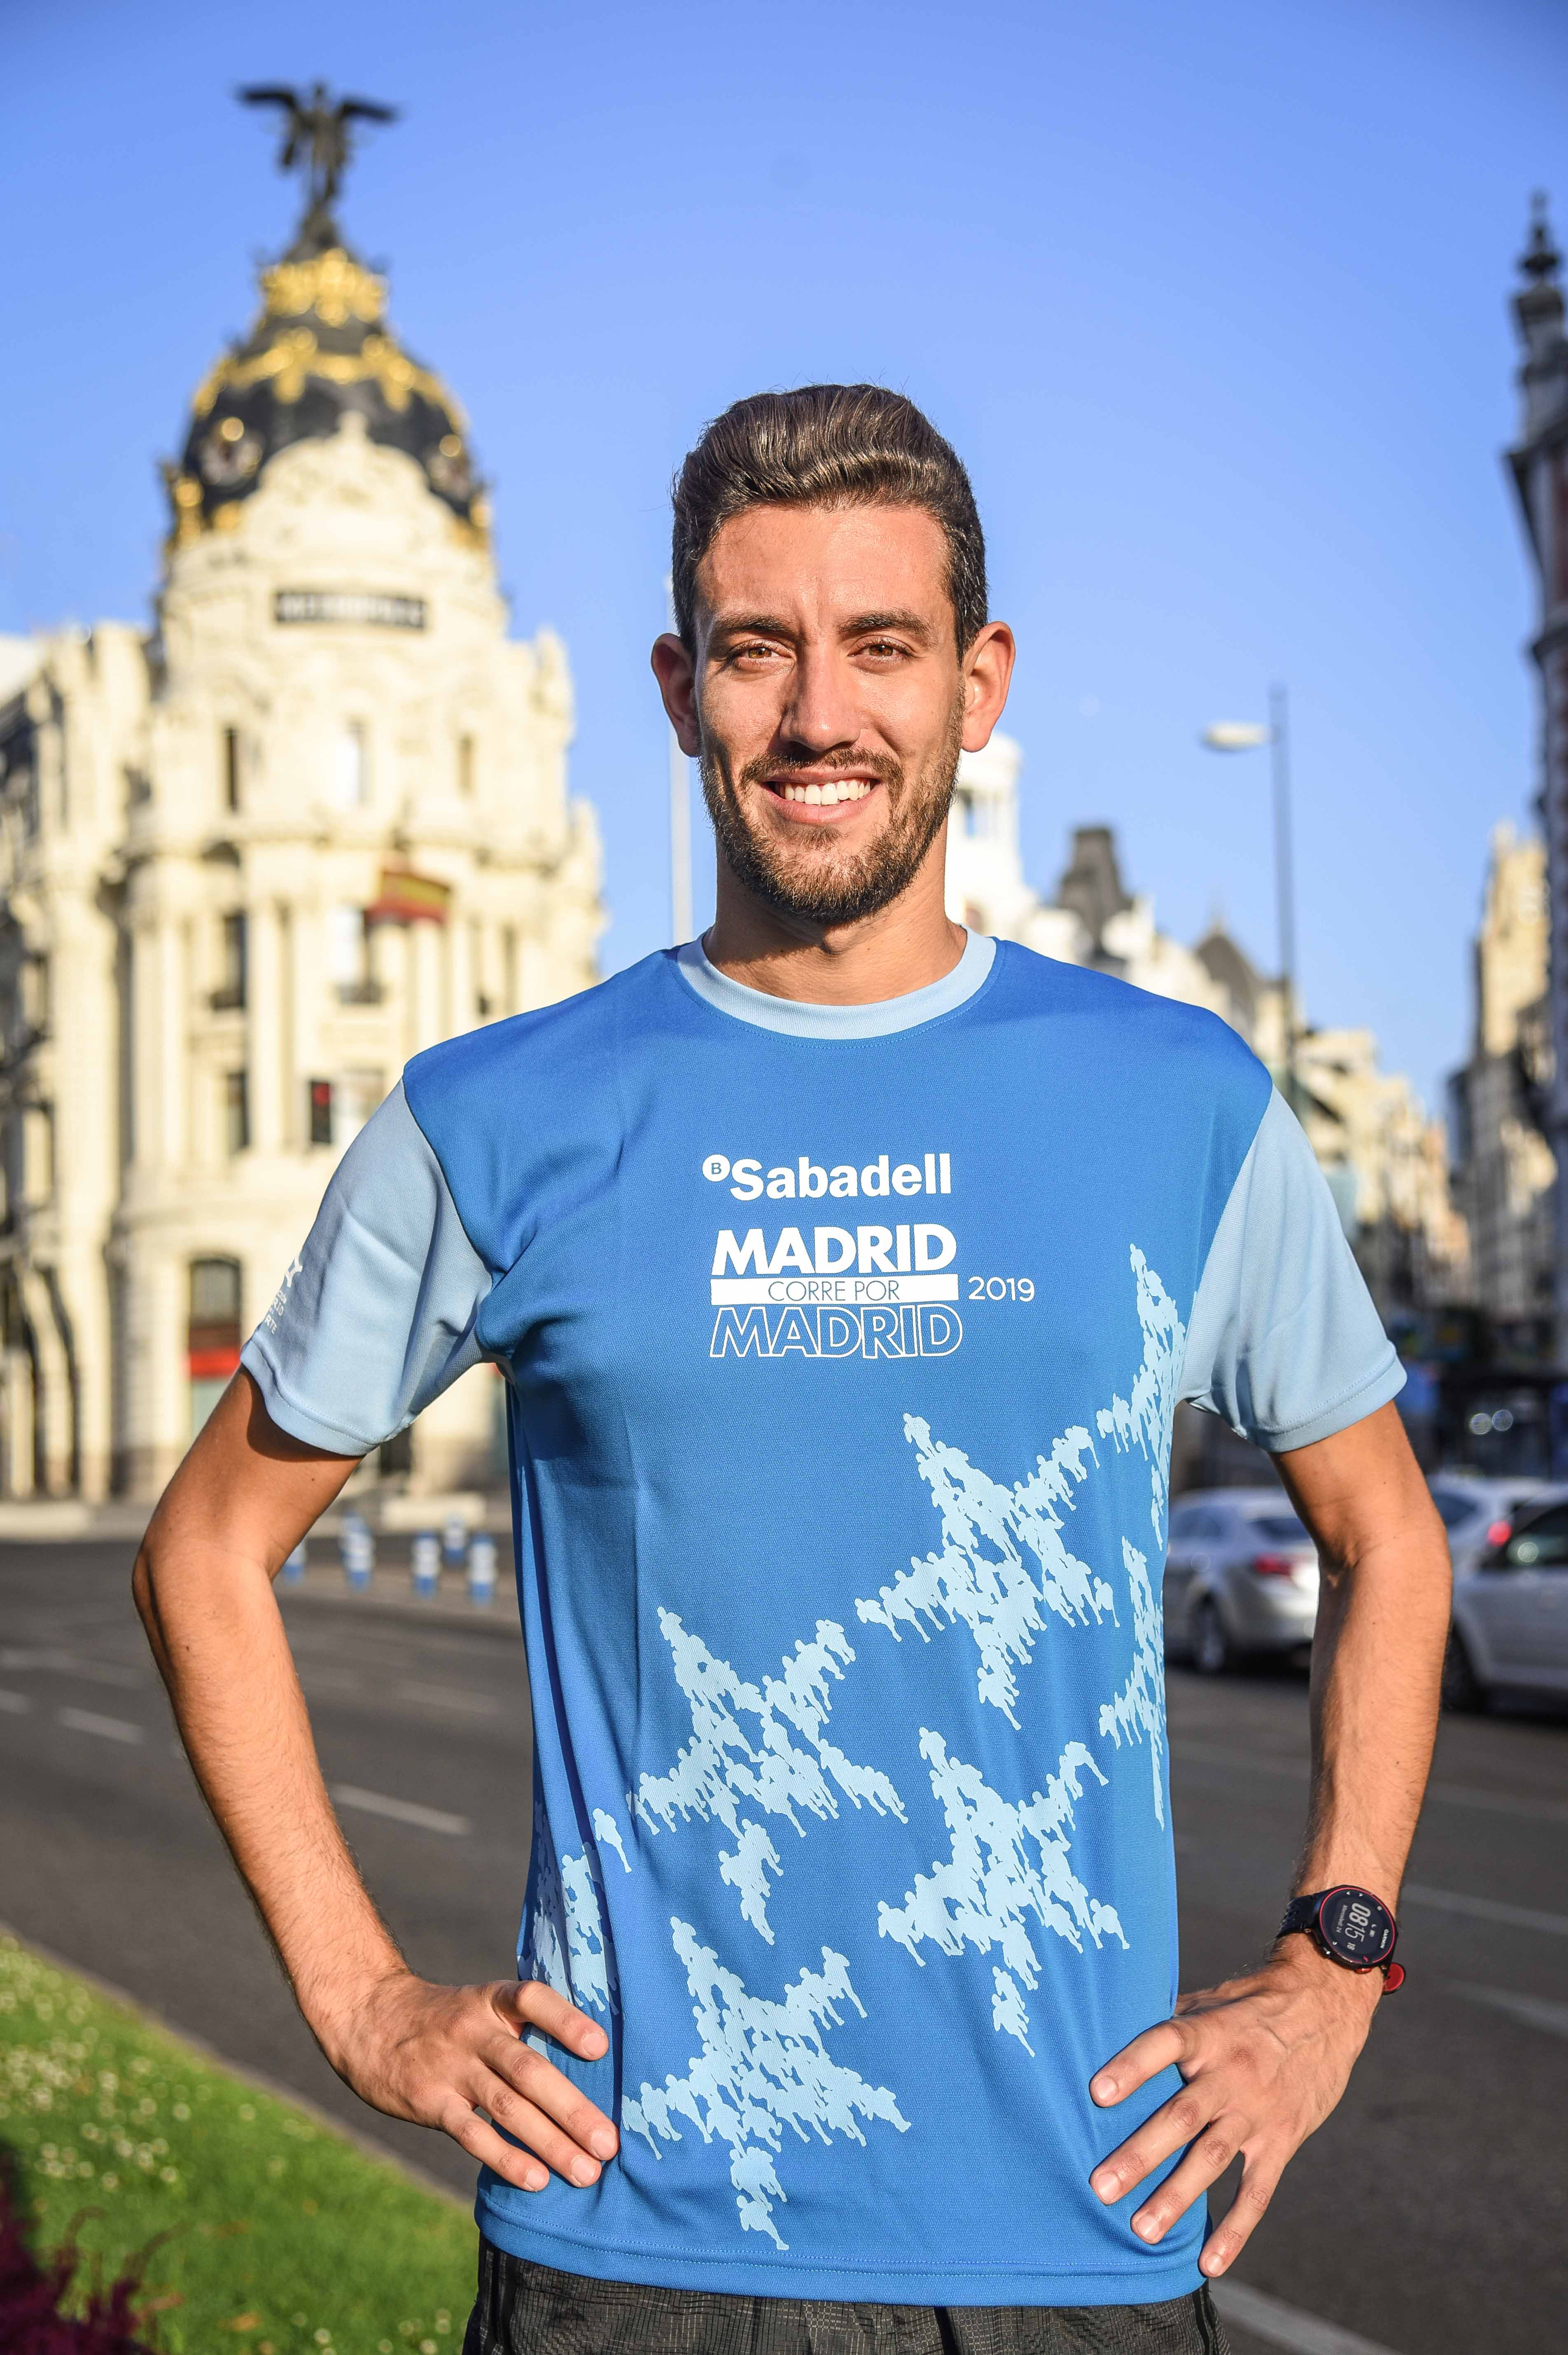 Camiseta oficial Madrid corre por Madrid